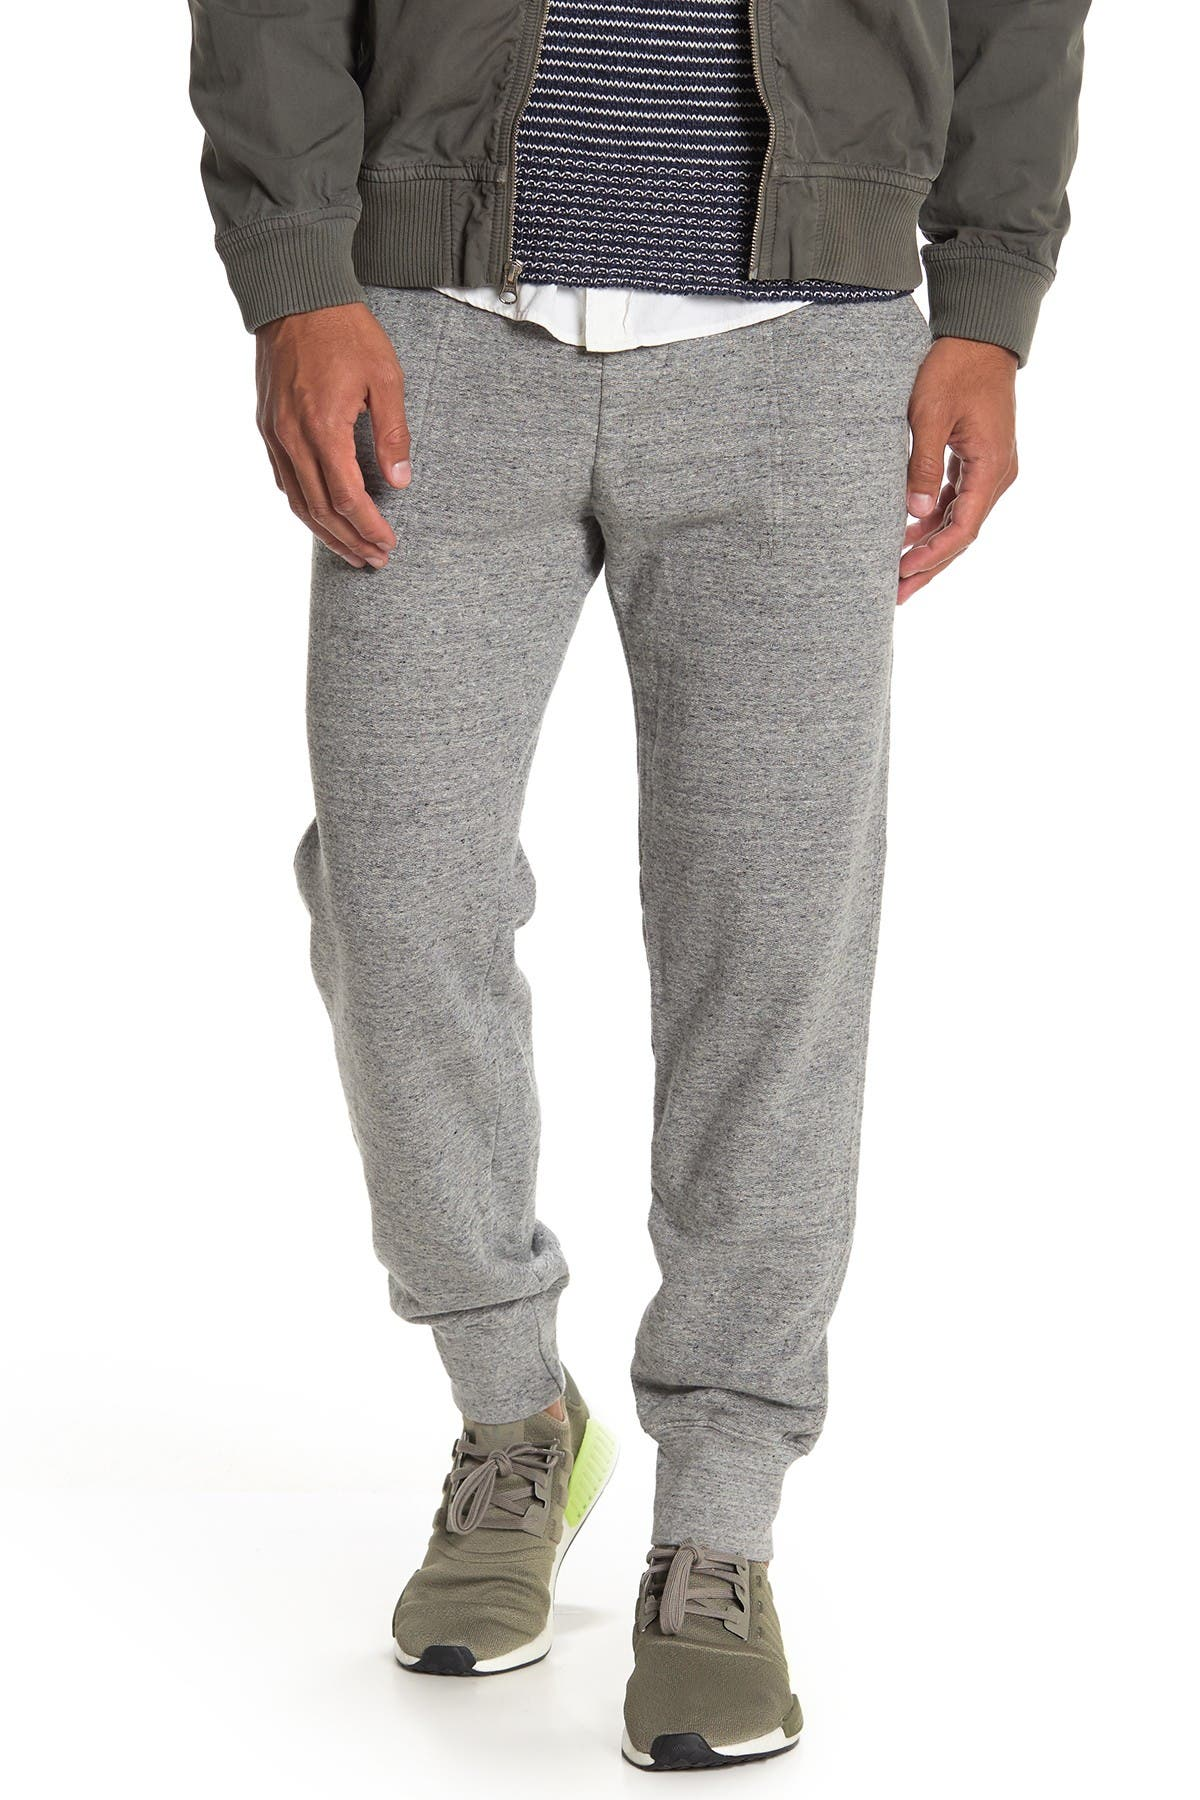 Image of Save Khaki French Terry Sweatpants